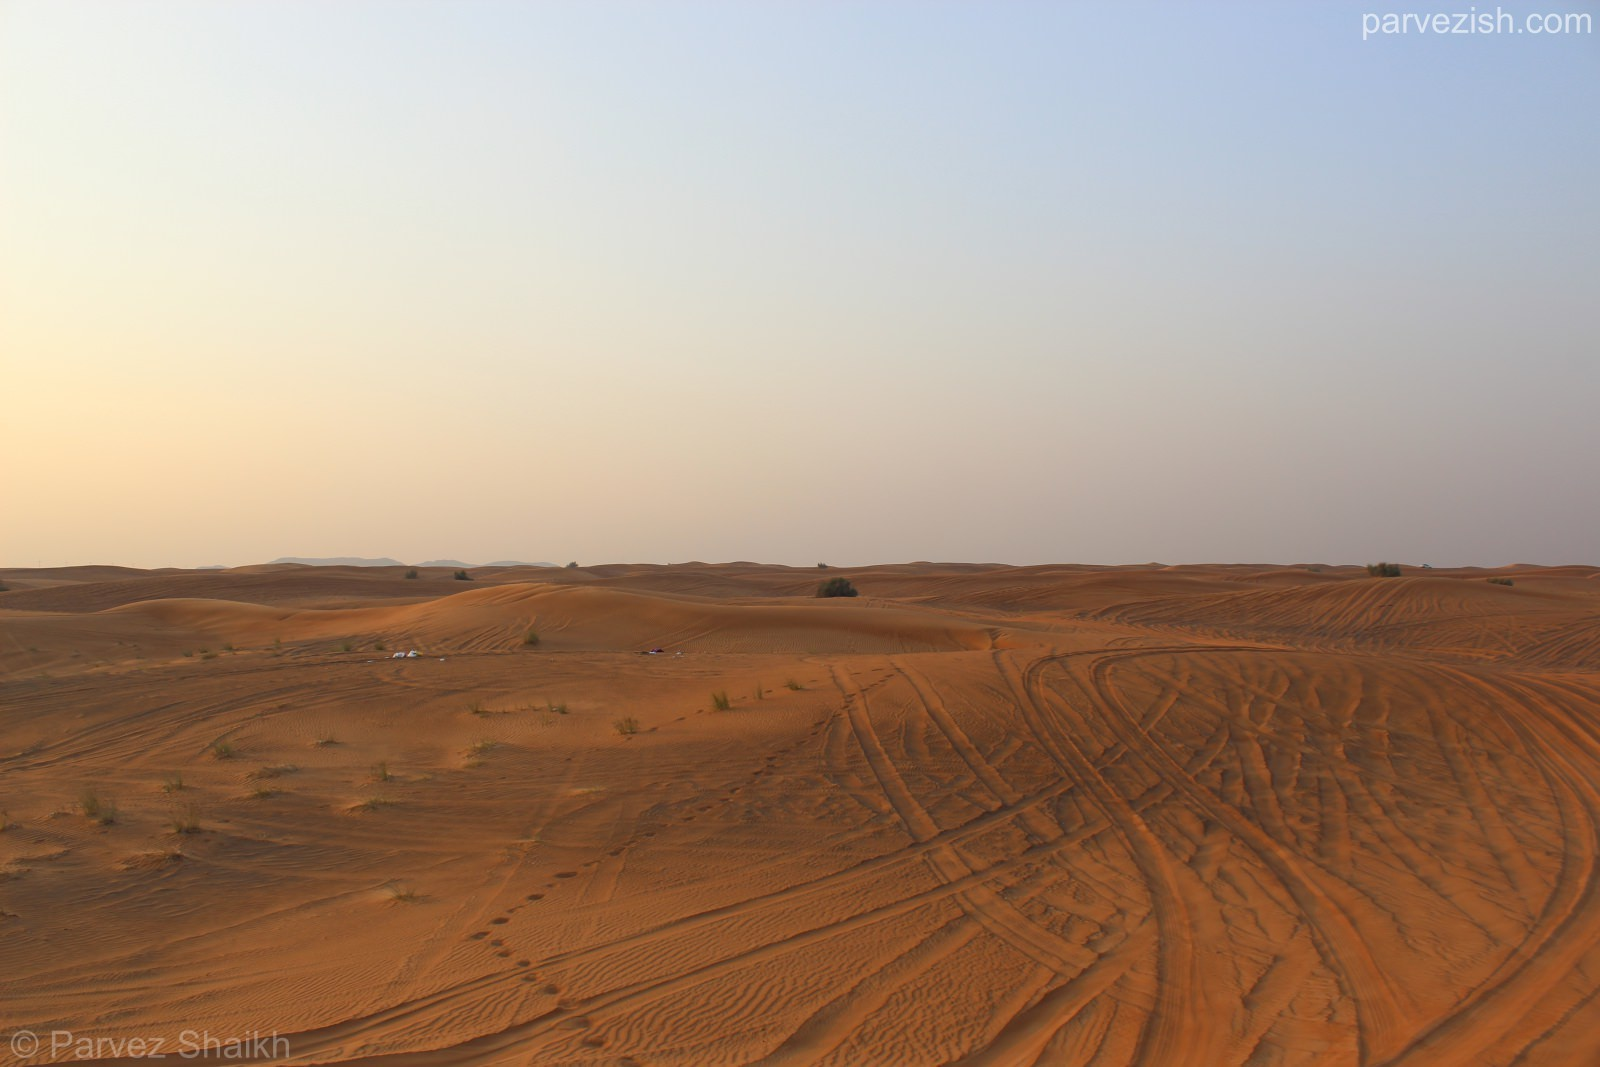 Cars And Humans Leaving Their Marks in the Dubai Desert